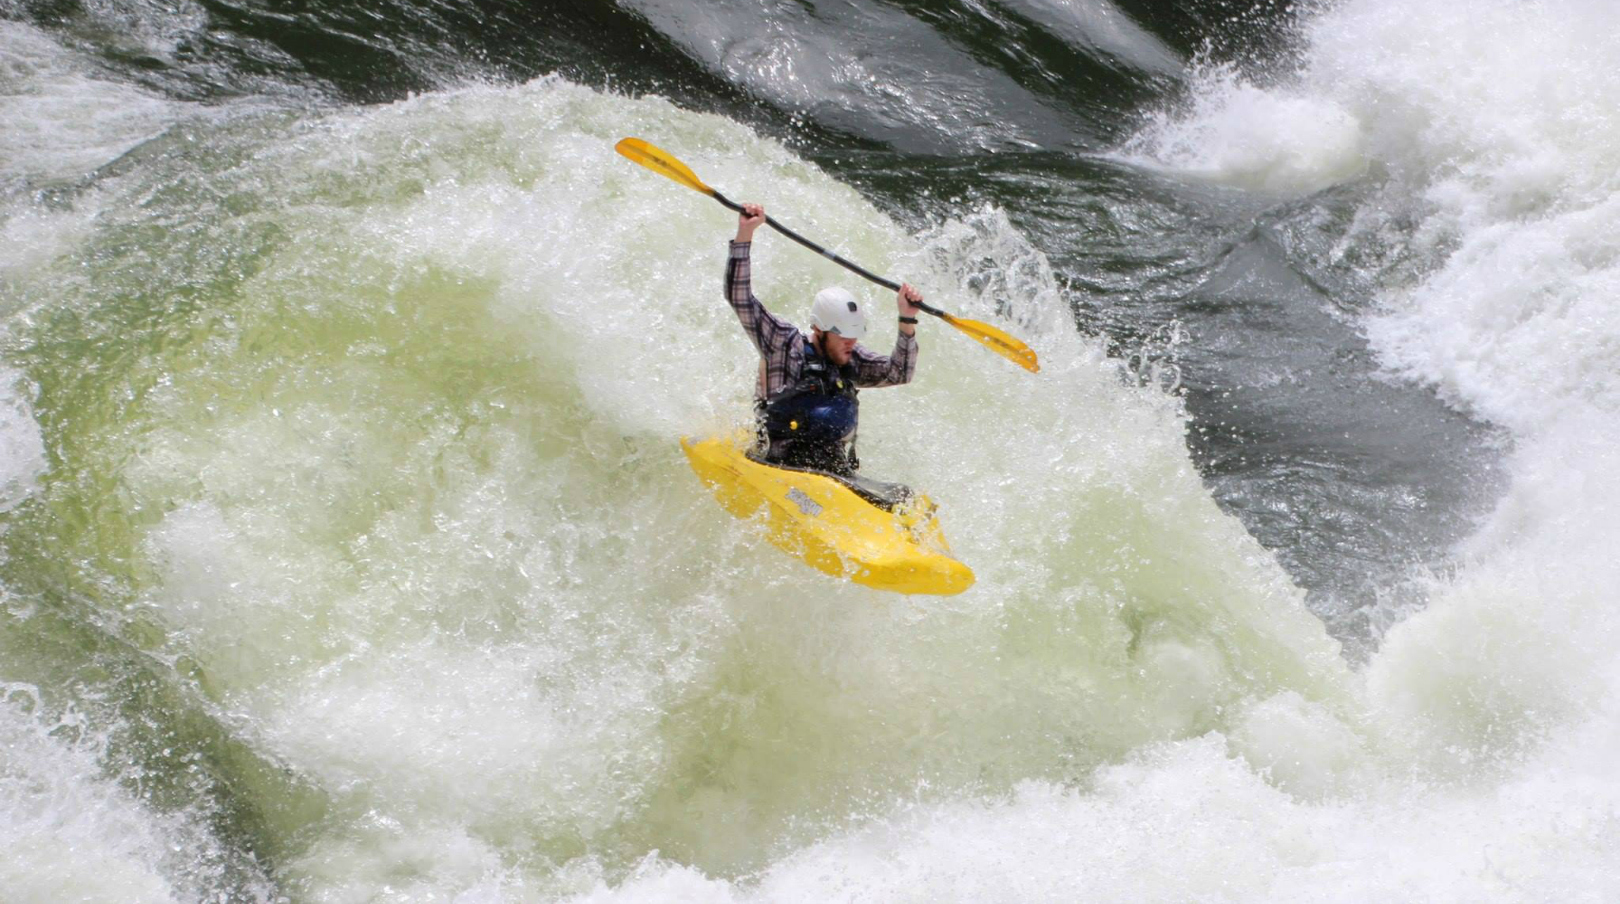 Go Big, kayaking the Zambezi